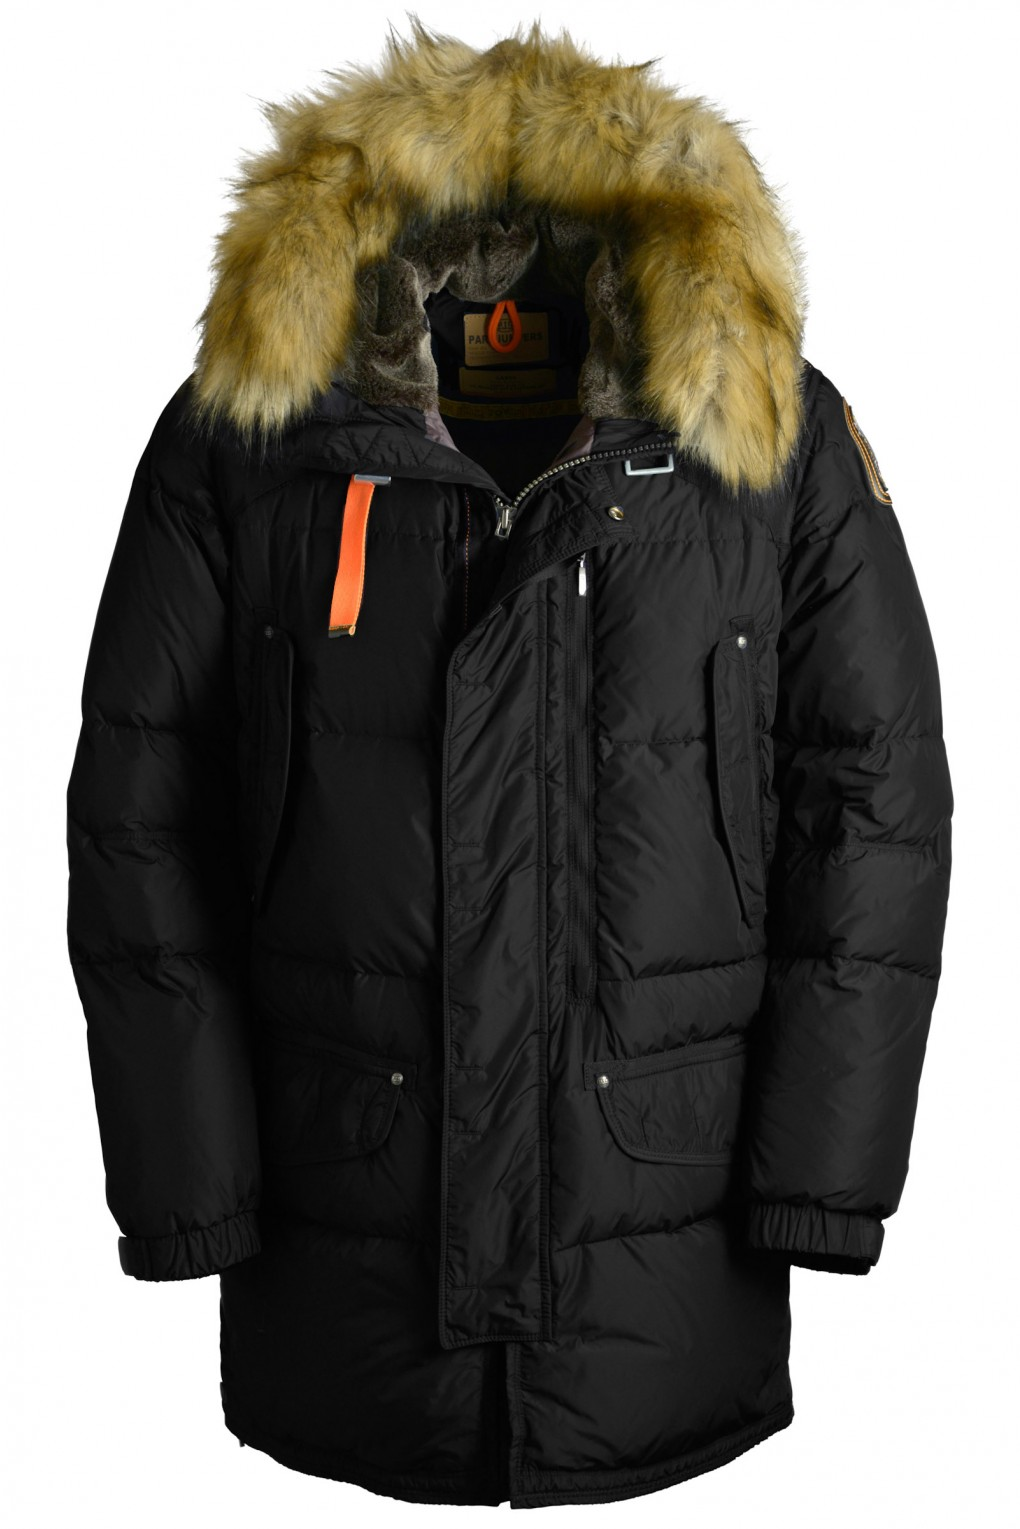 parajumpers HARRASEEKET ECO man outerwear Black